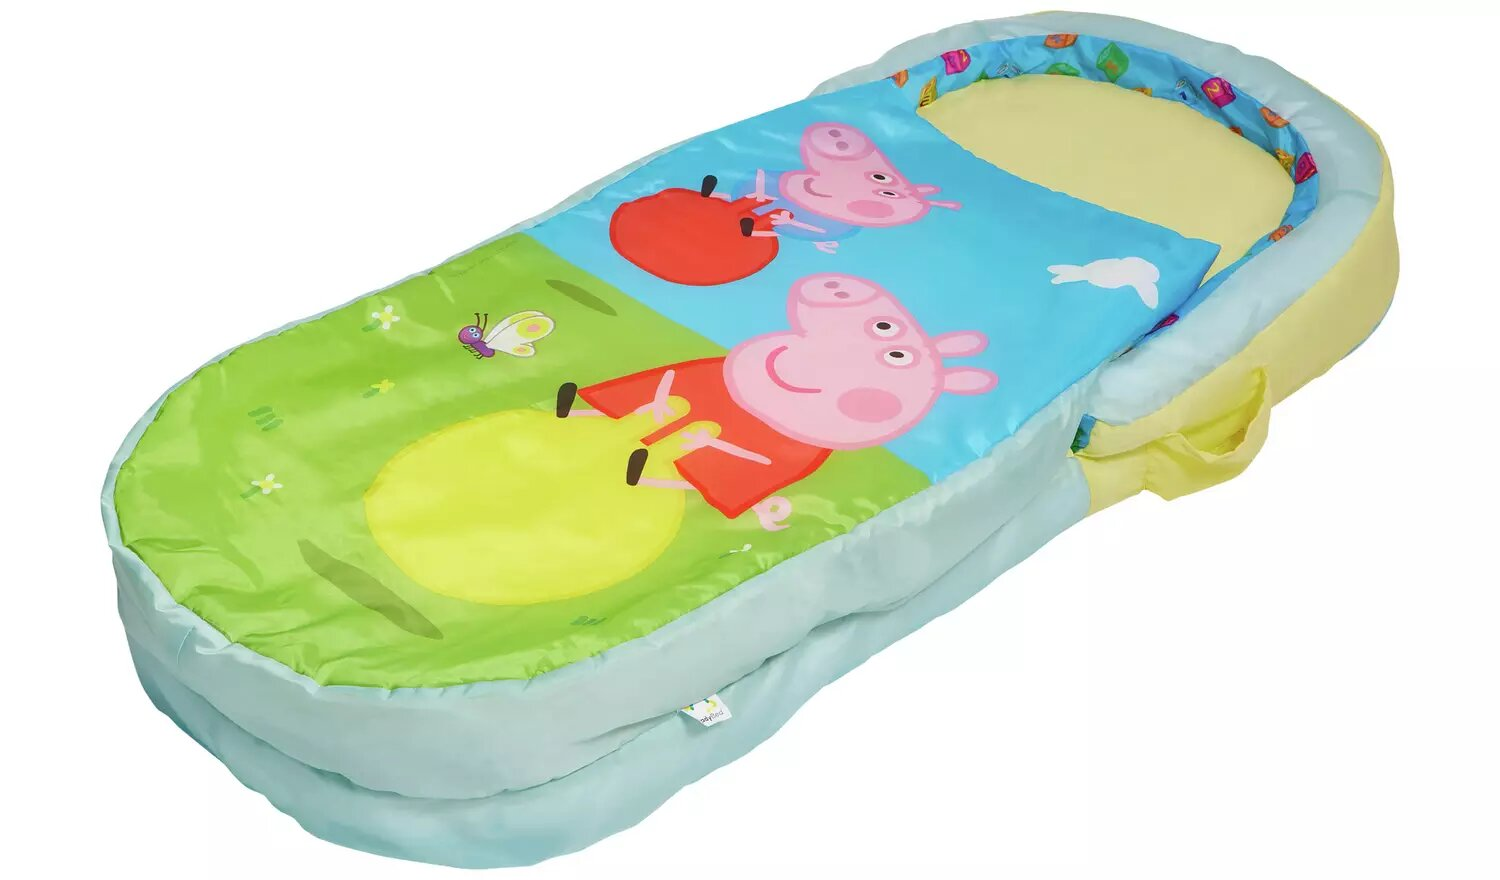 Peppa Pig My First Readybed Air Bed And Sleeping Bag.